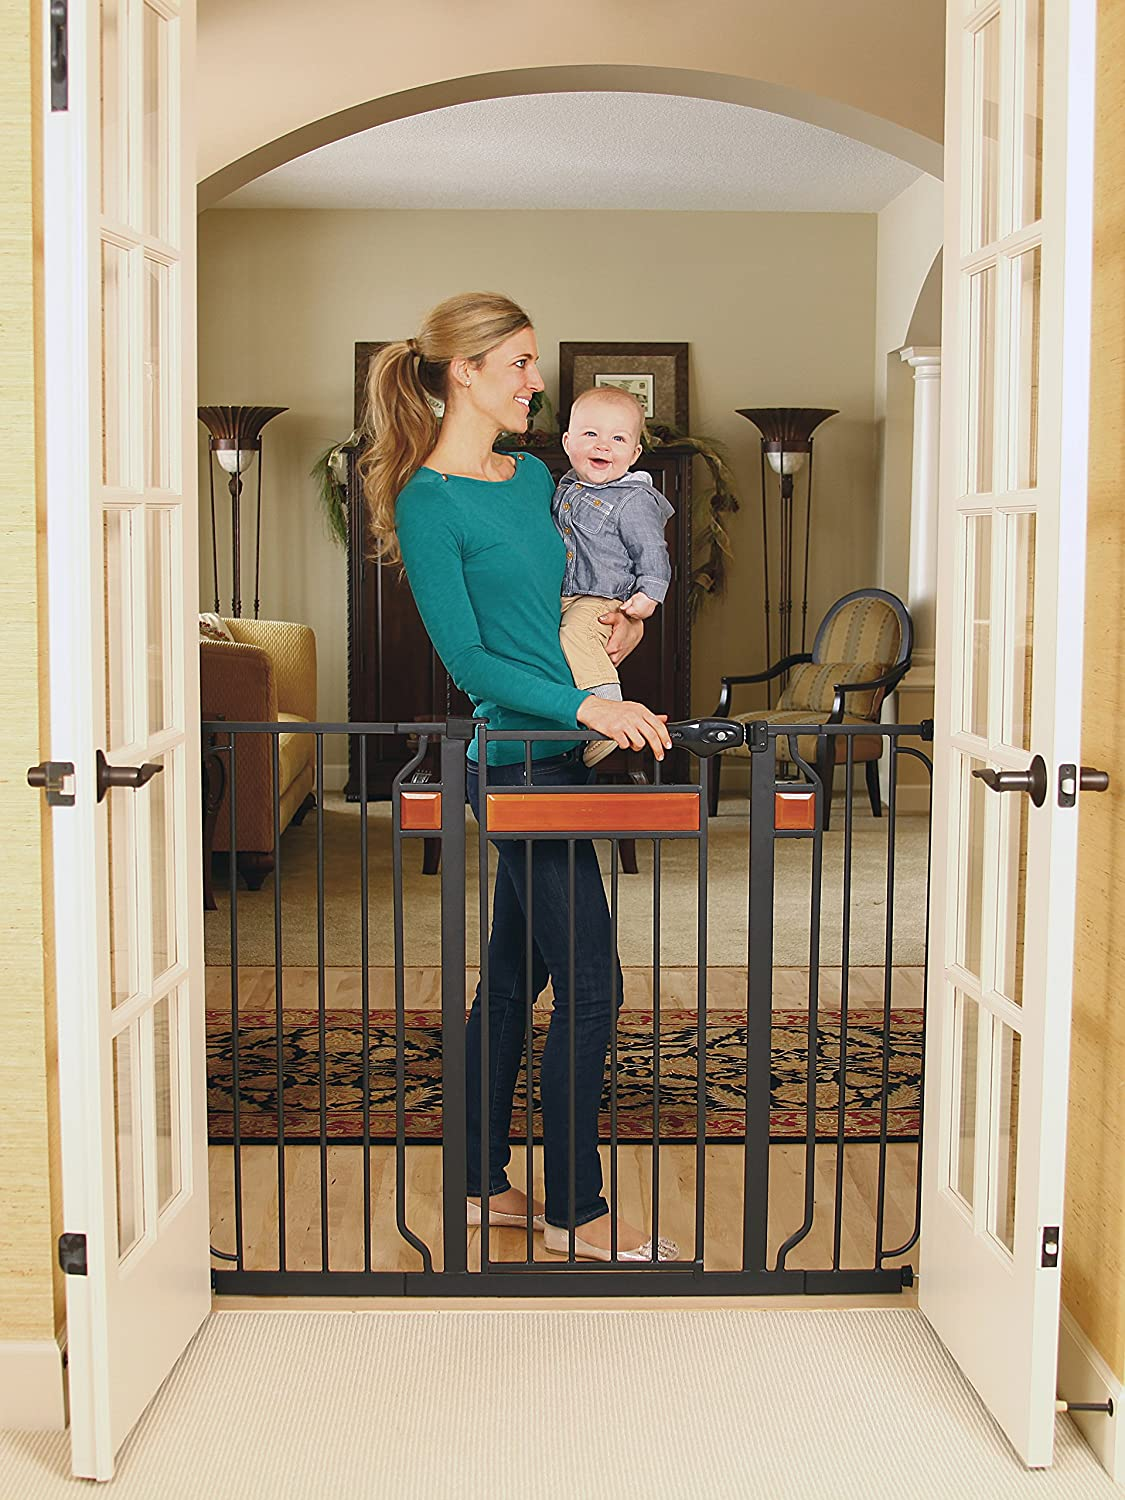 Regalo Home Accents Extra Tall Walk Thru Gate Reviews, Questions And Answers